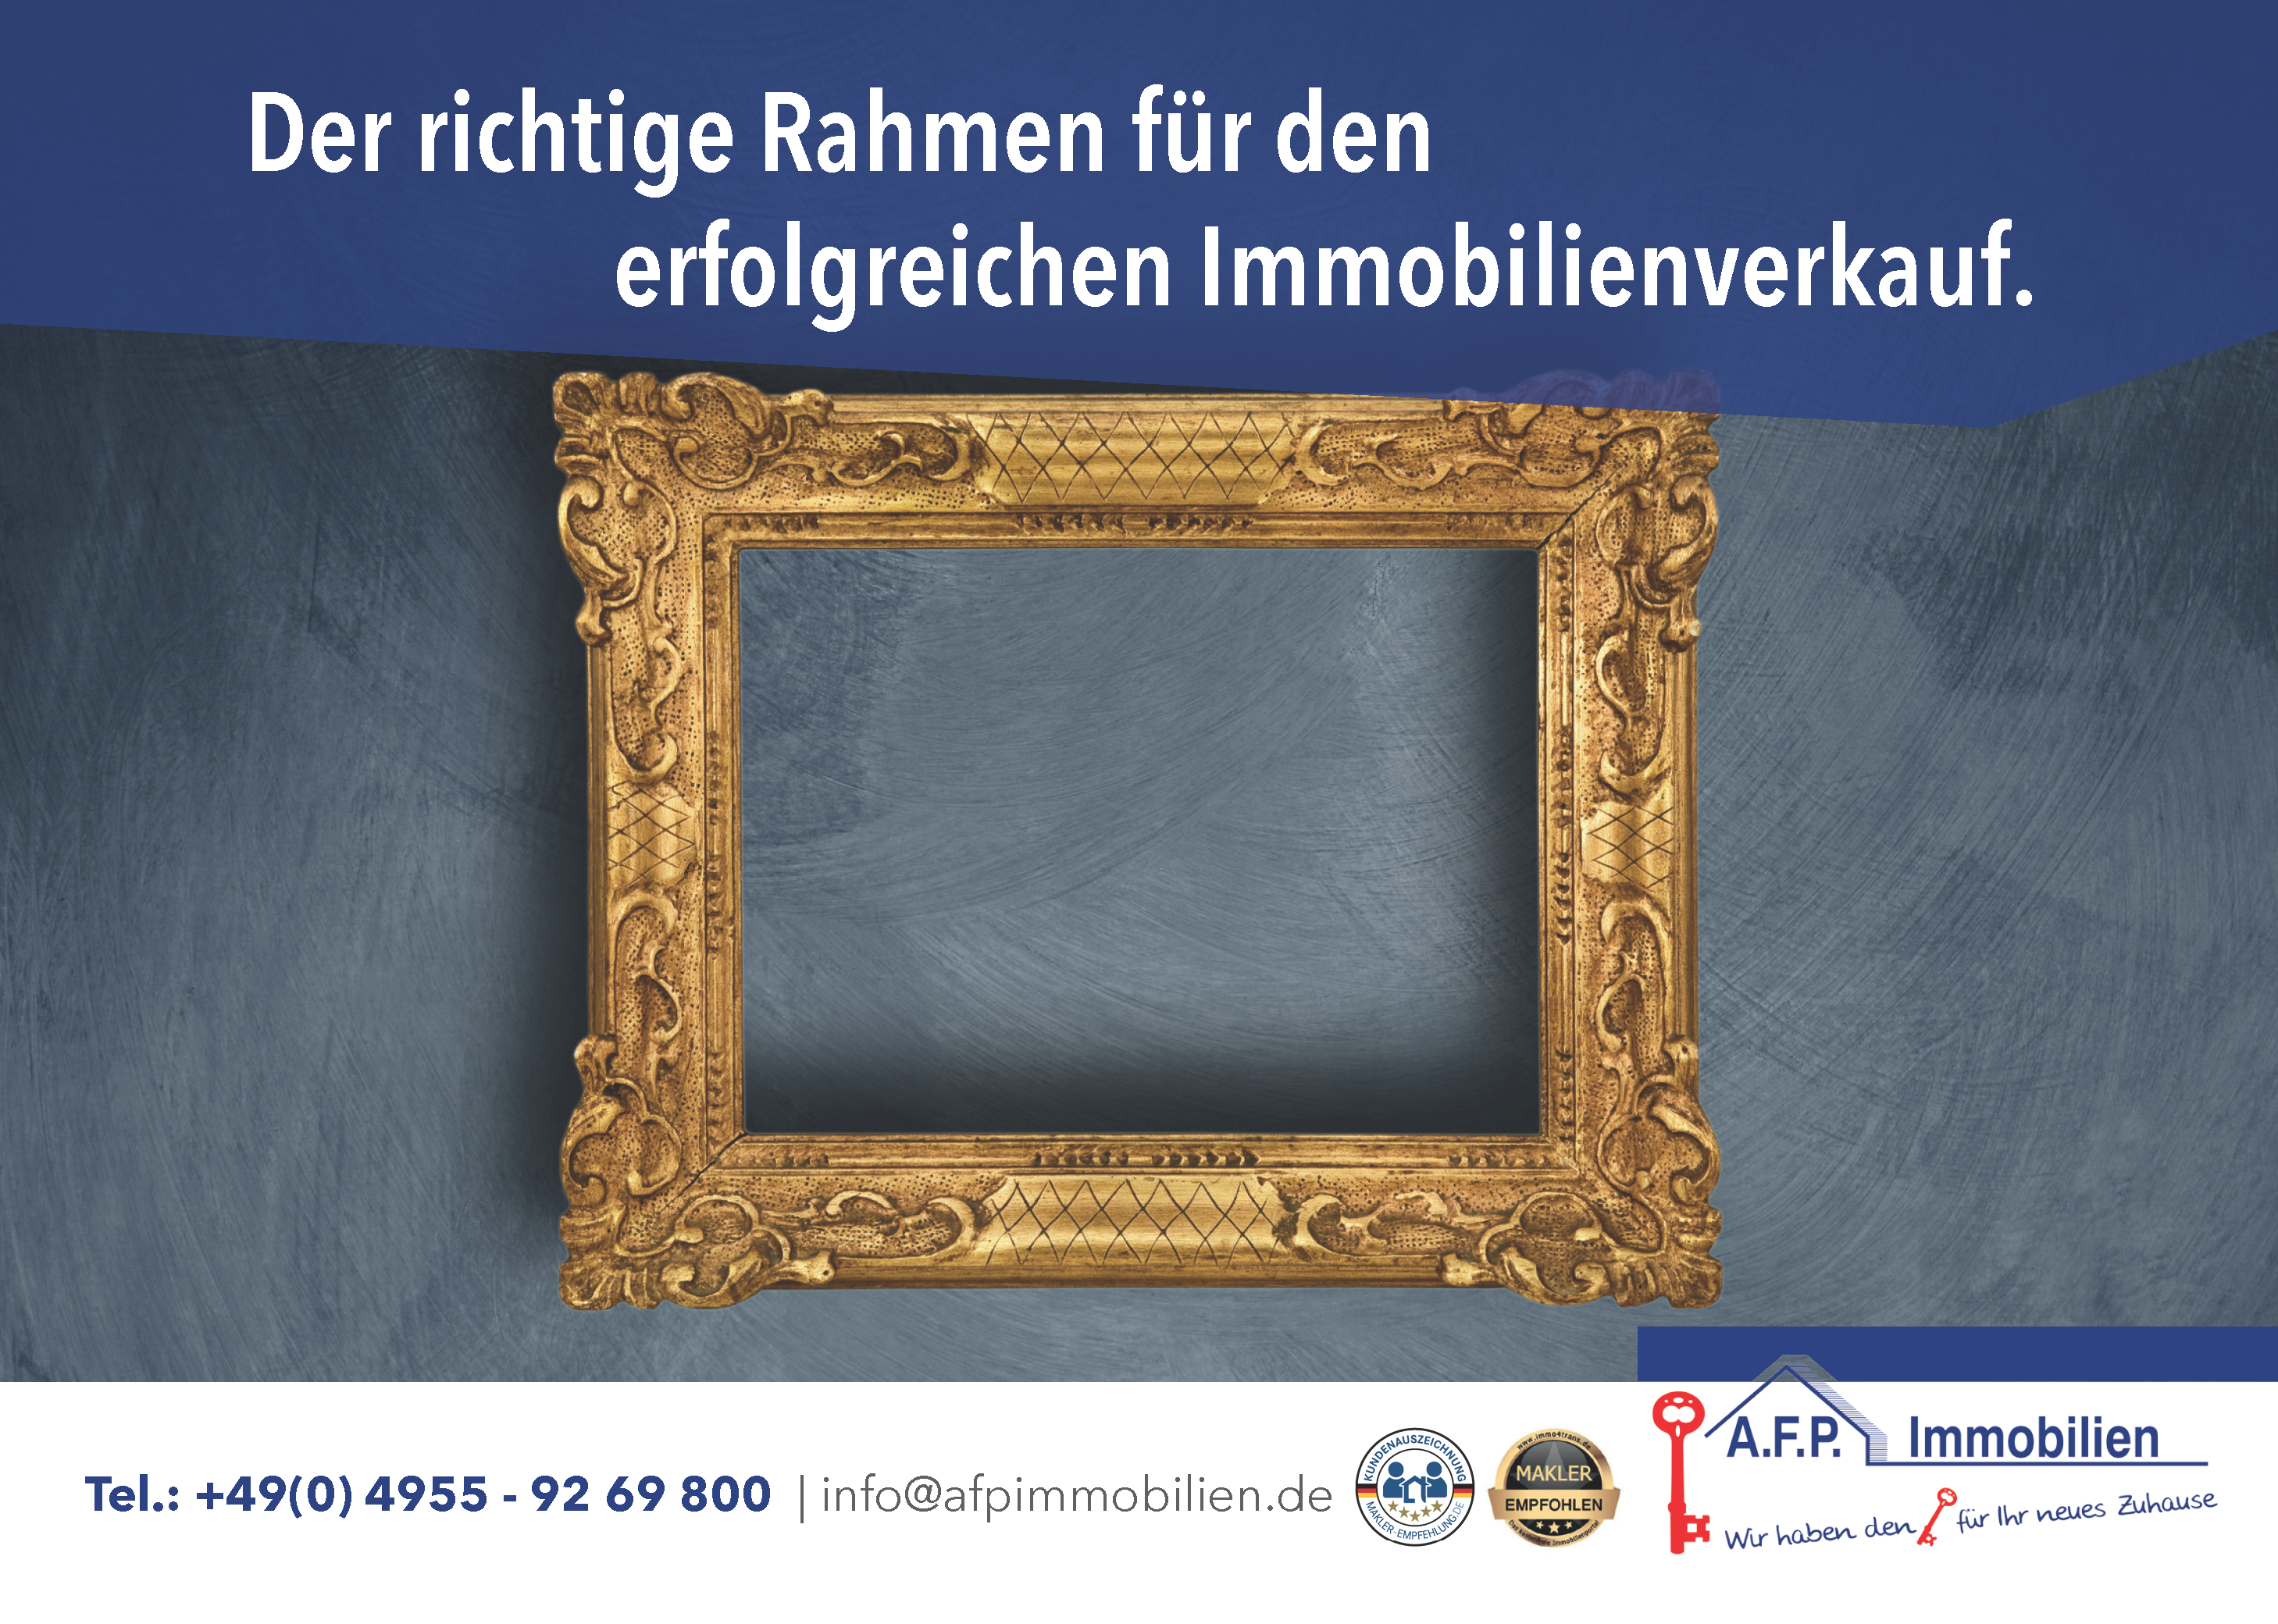 AFP-Consulting - A.F.P. Immobilien Management GmbH